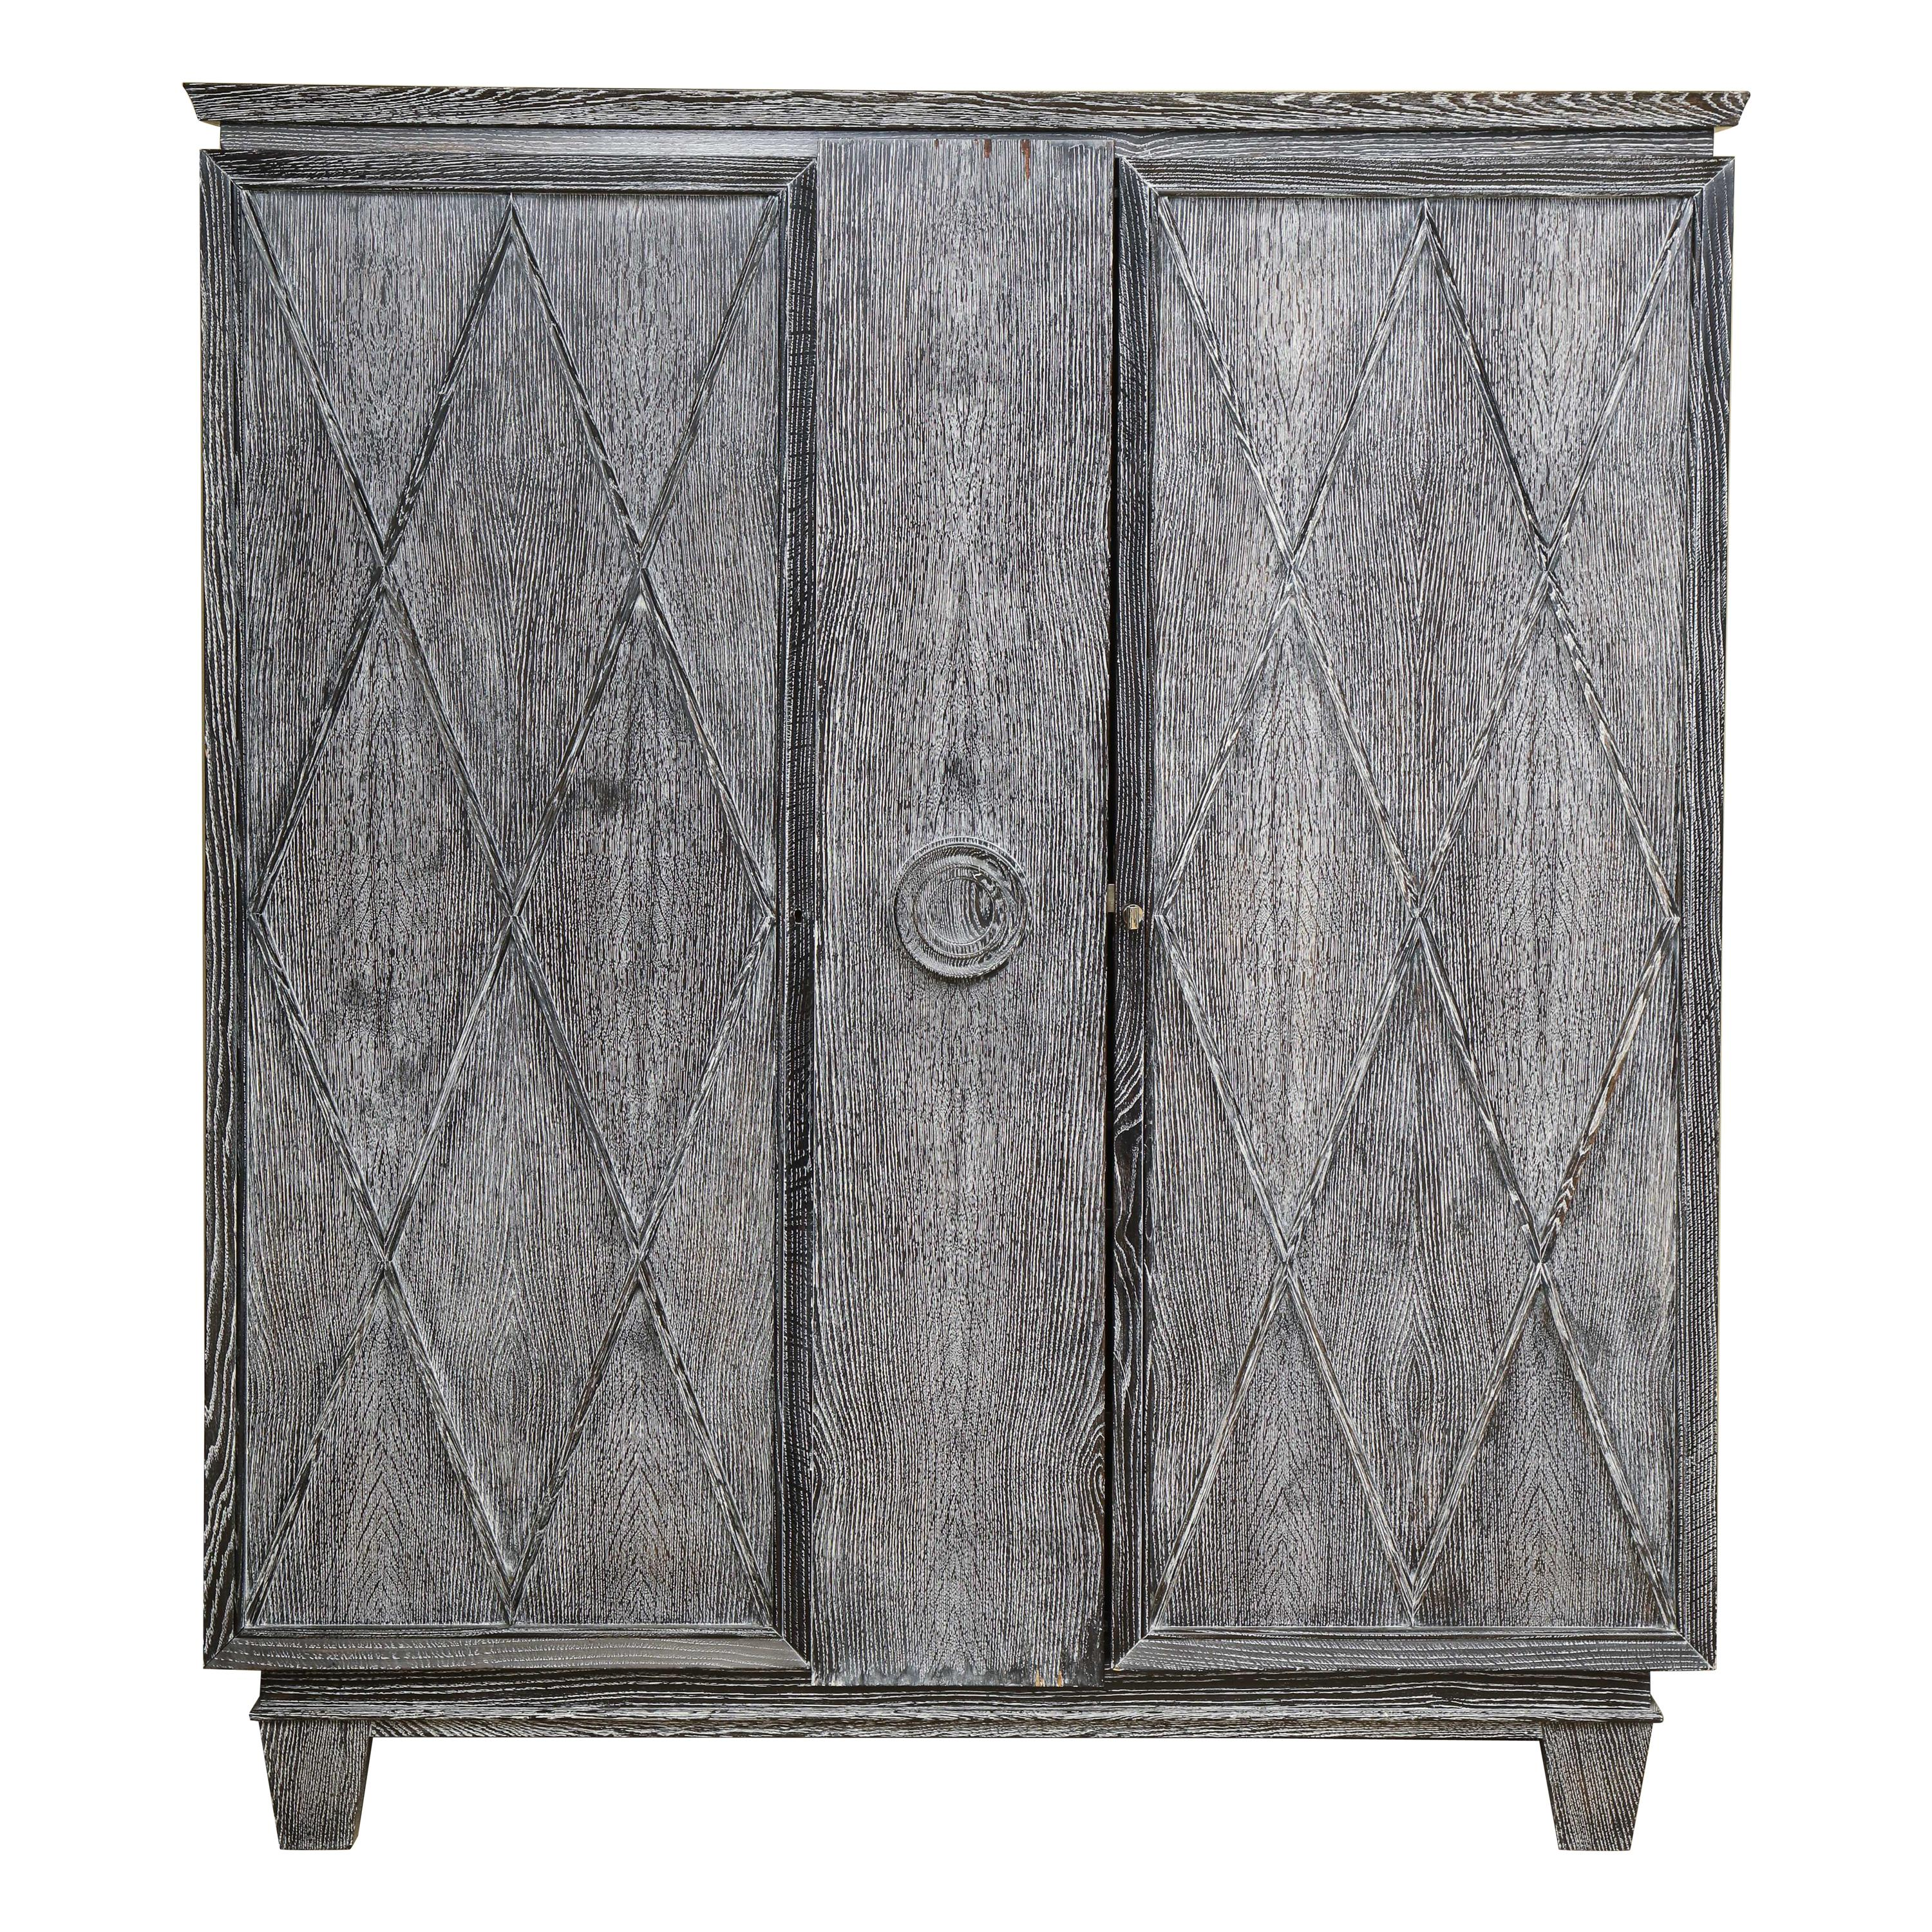 1930s Wardrobes and Armoires - 68 For Sale at 1stdibs